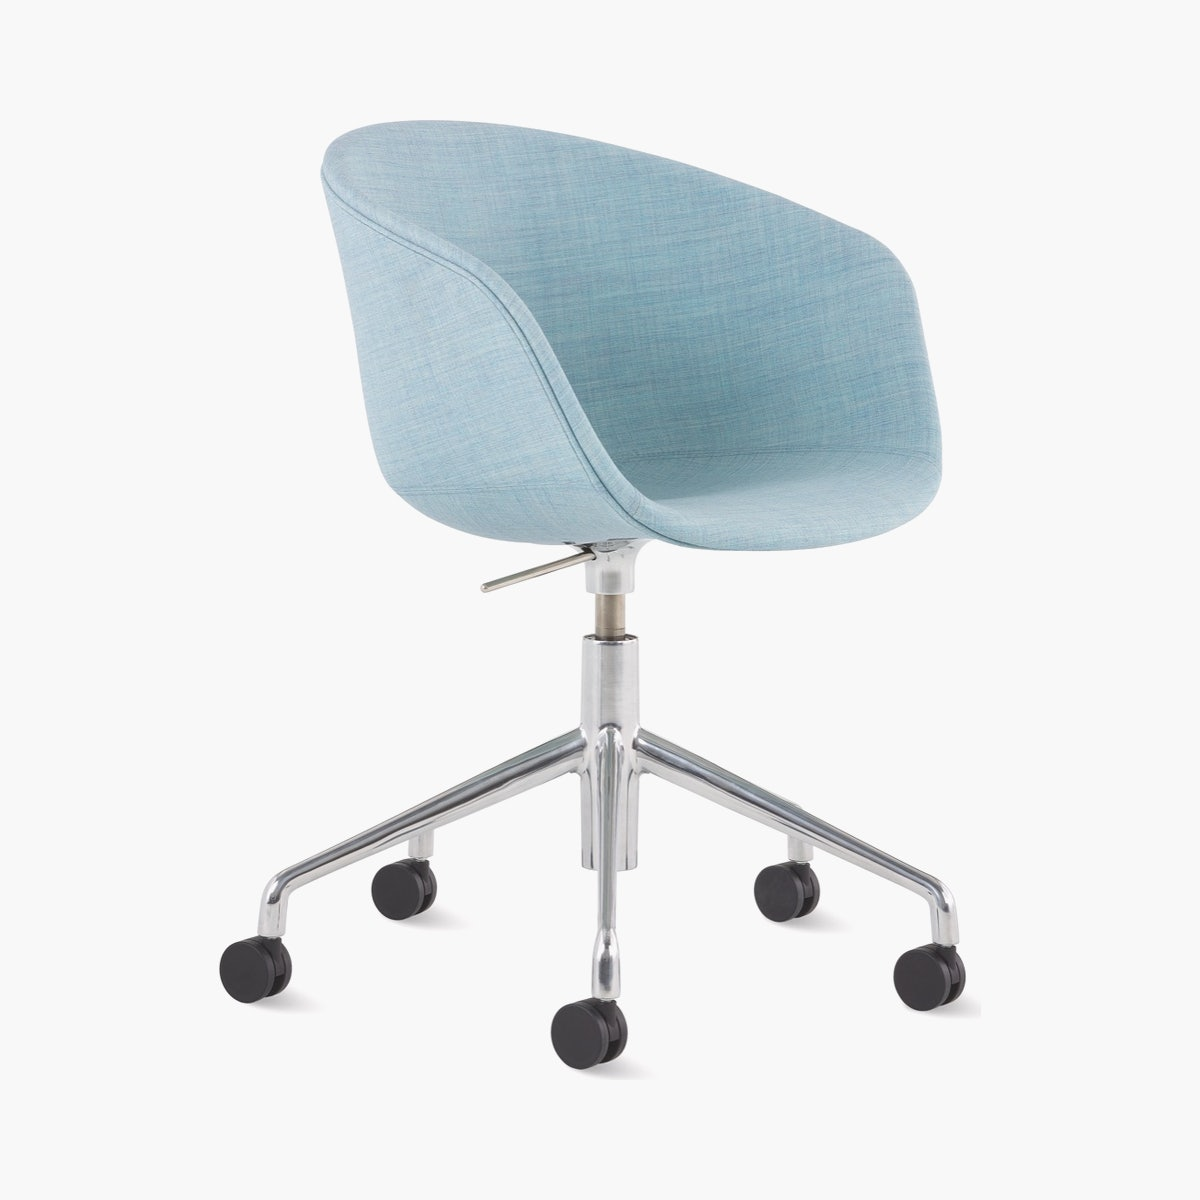 About A Chair 53 Upholstered Task Armchair